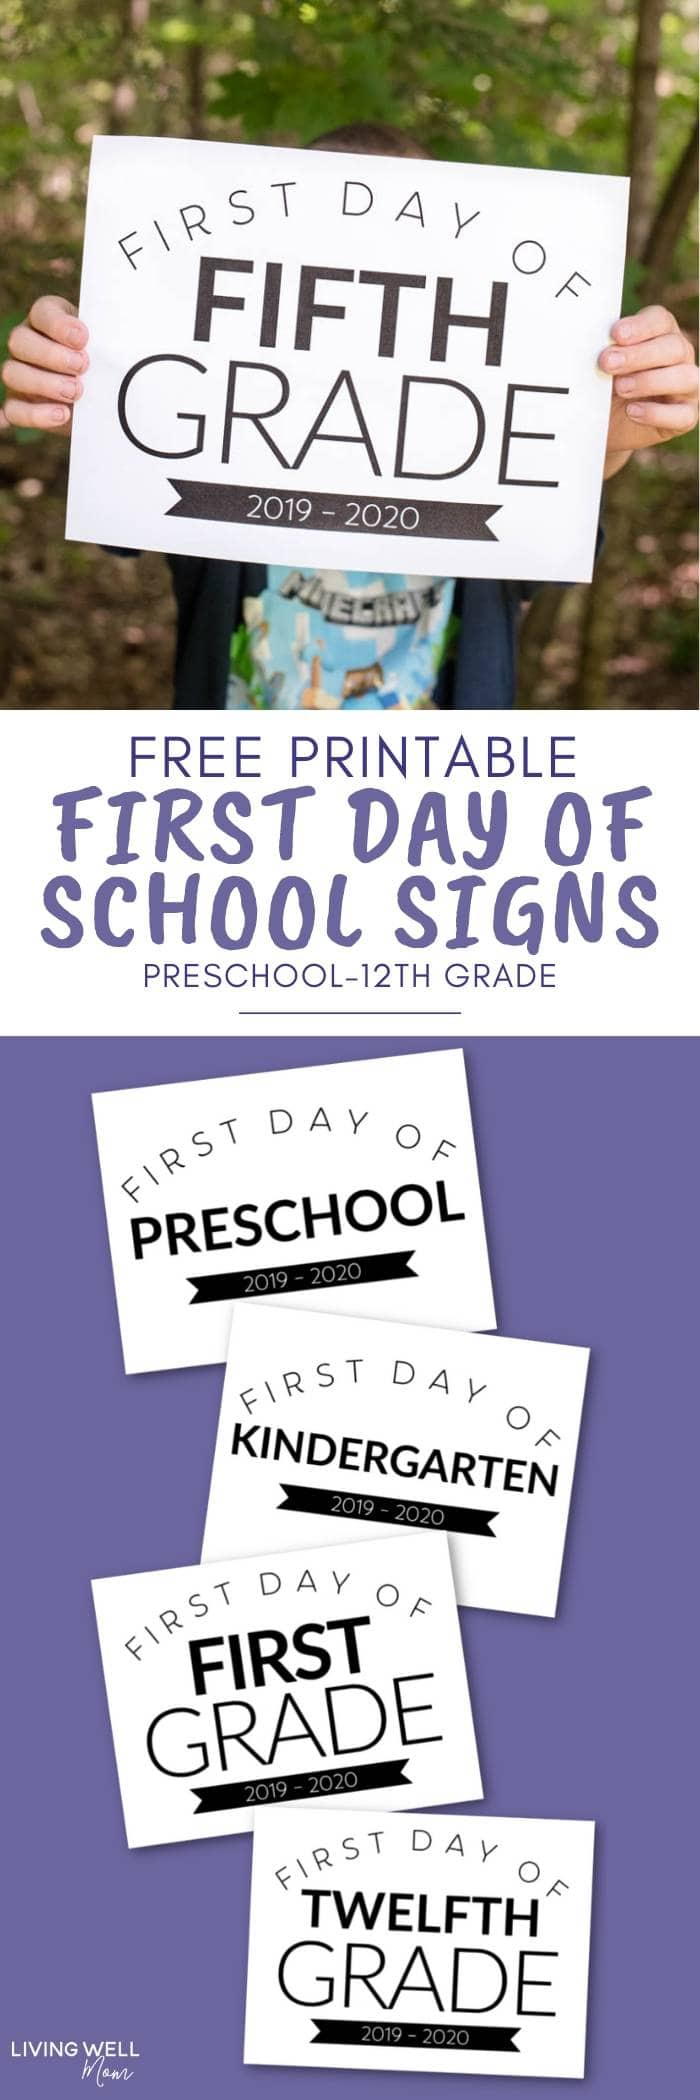 photo about Printable First Day of Kindergarten Sign titled Totally free Printable 1st Working day of University Indicators for All Grades